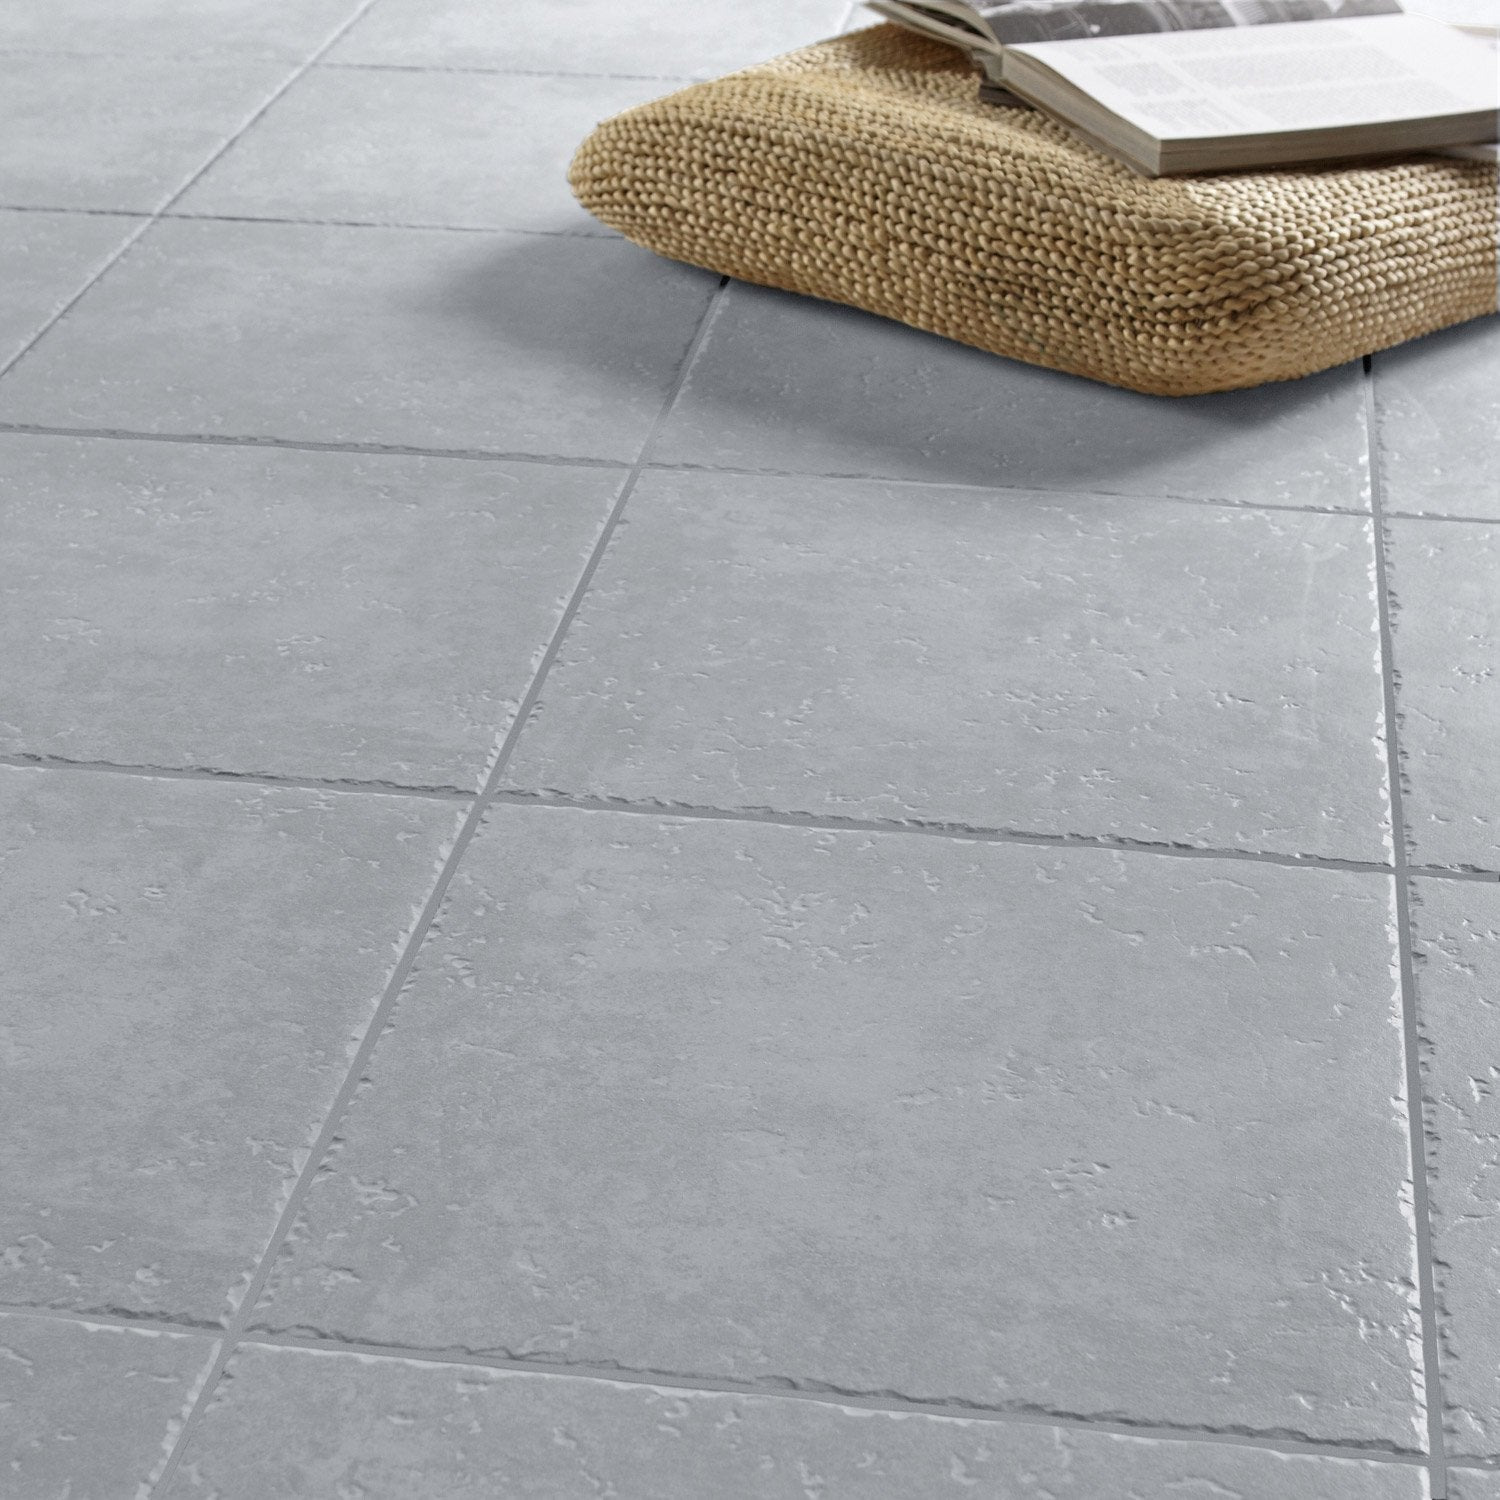 Carrelage sol gris effet pierre michigan x cm for Carrelage sol gris clair